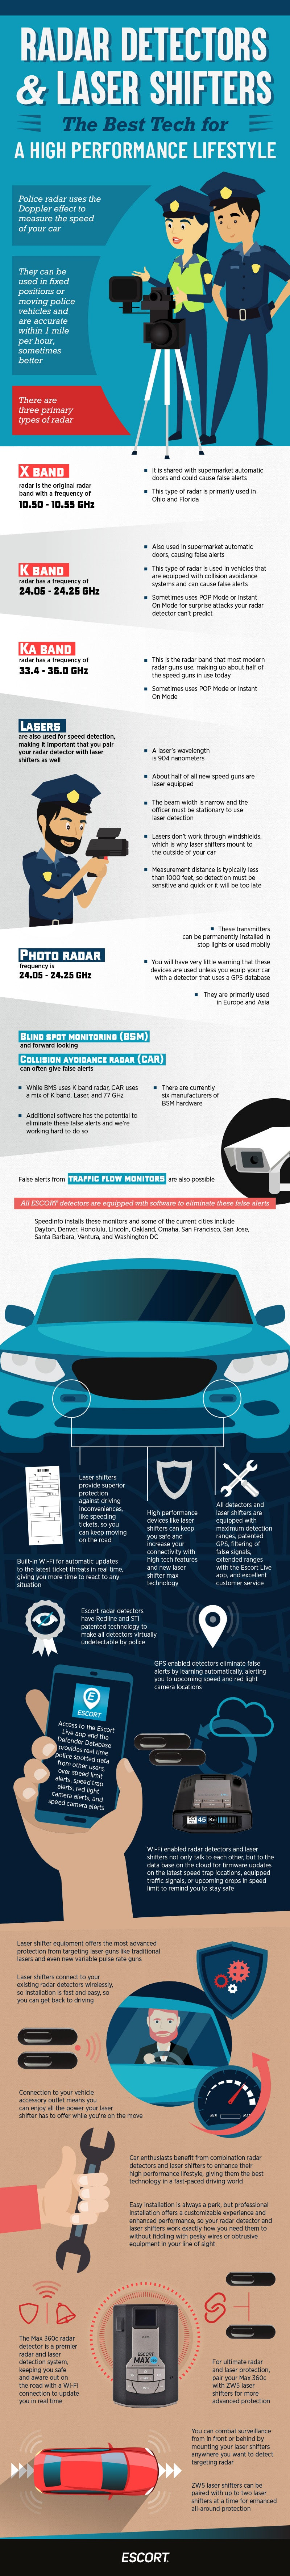 ESCORT Laser Shifters infographic